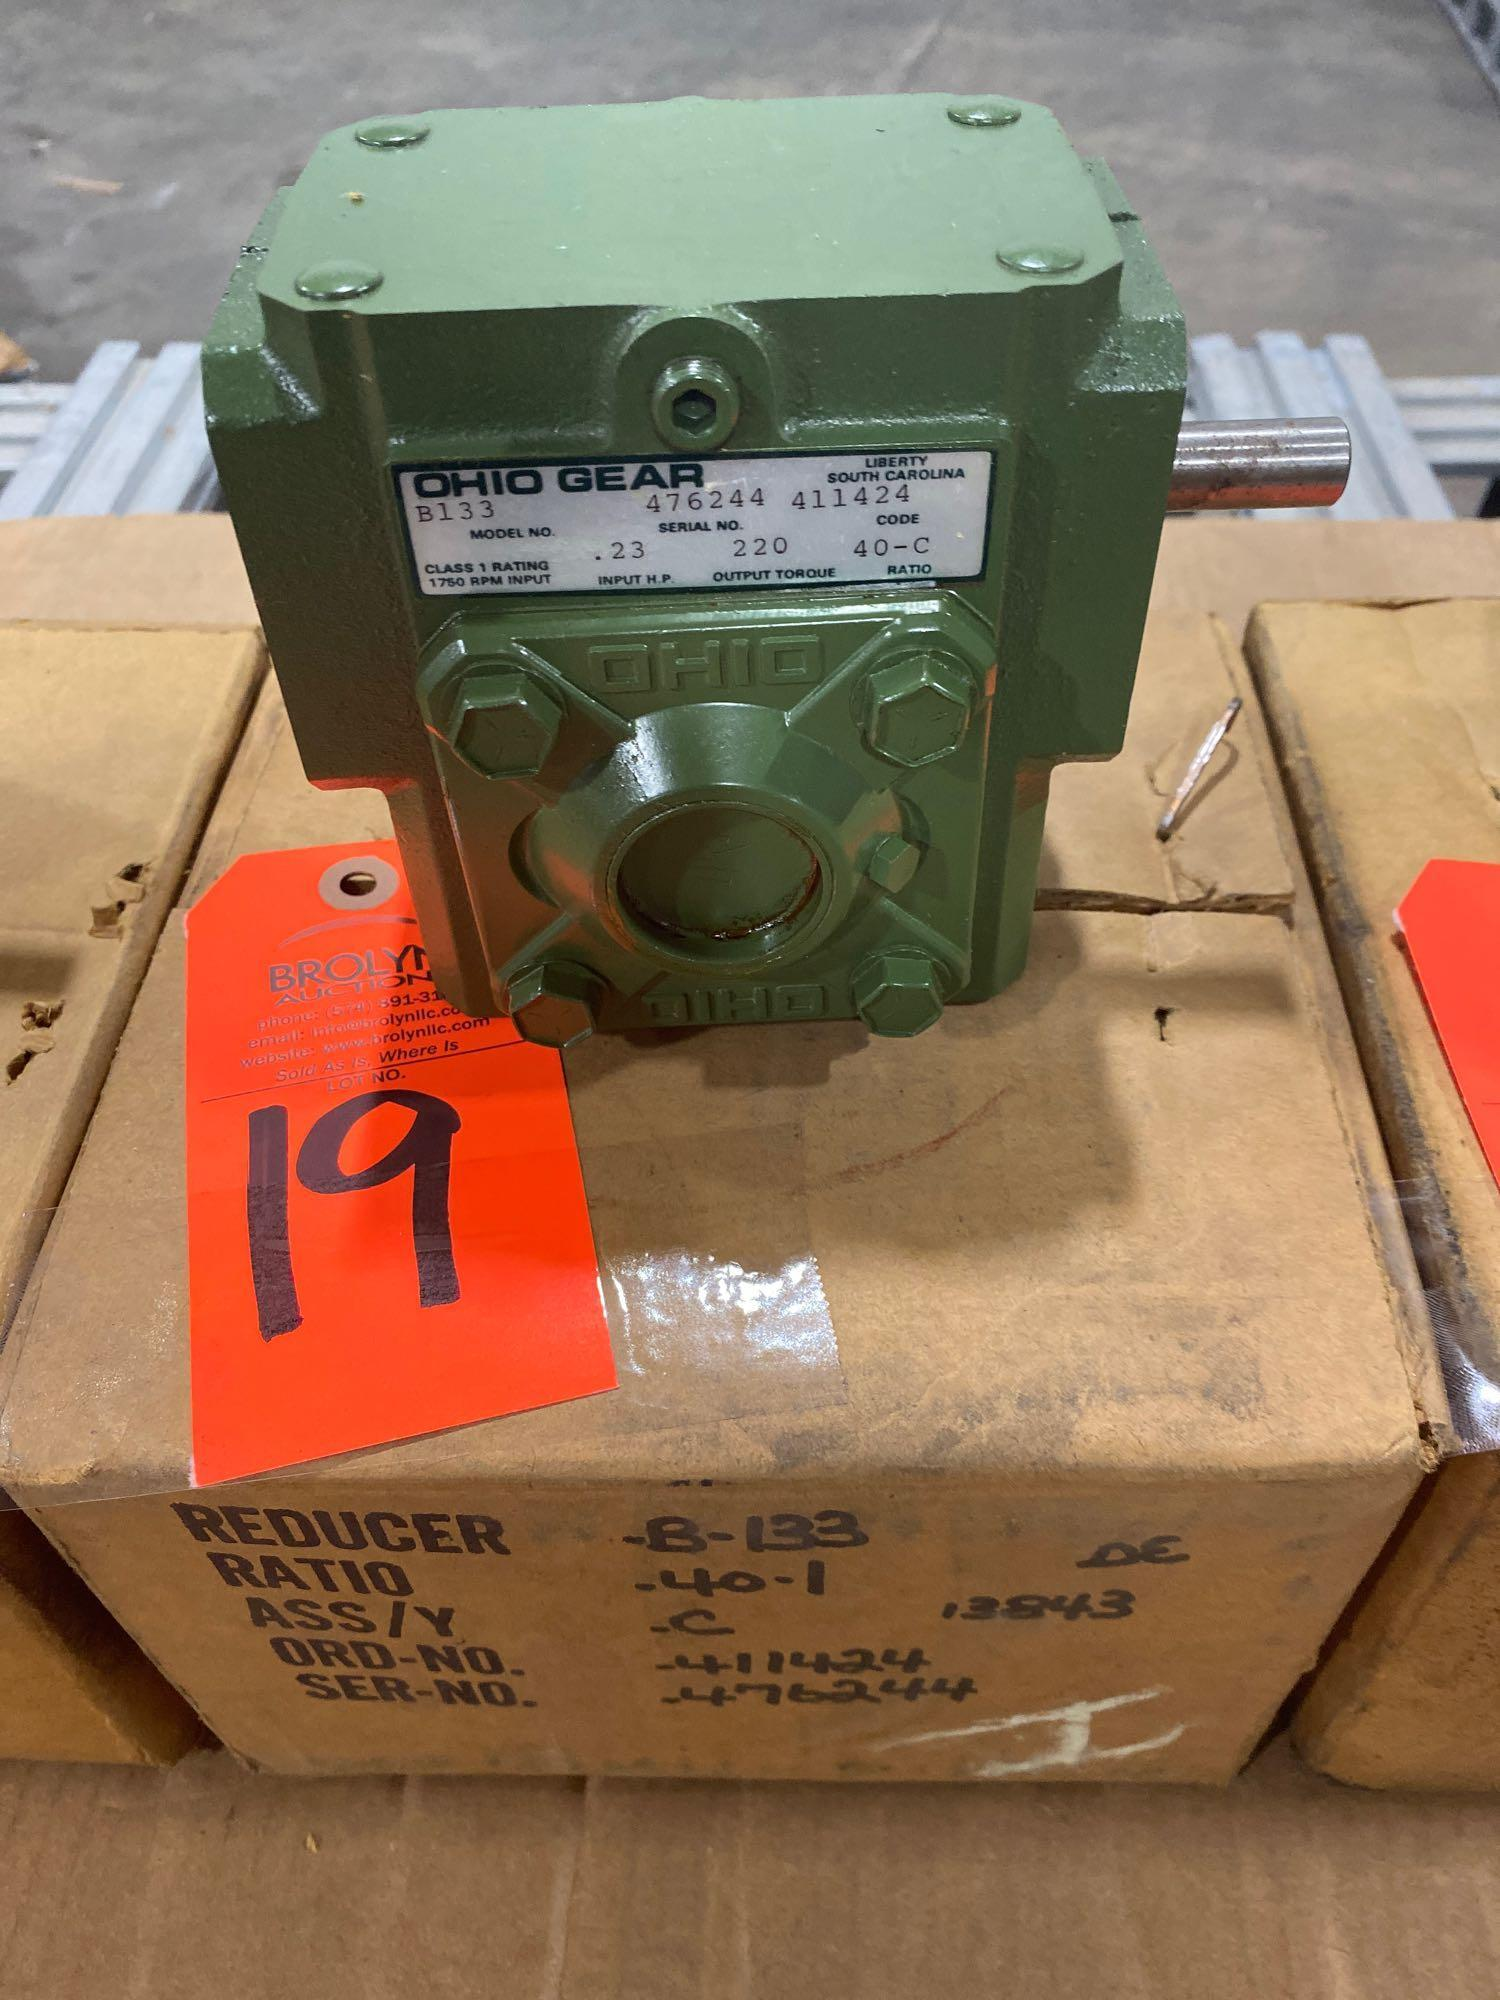 Lot 19 - Ohio Gear model B-133 gearbox. 40-C ratio. New in box.